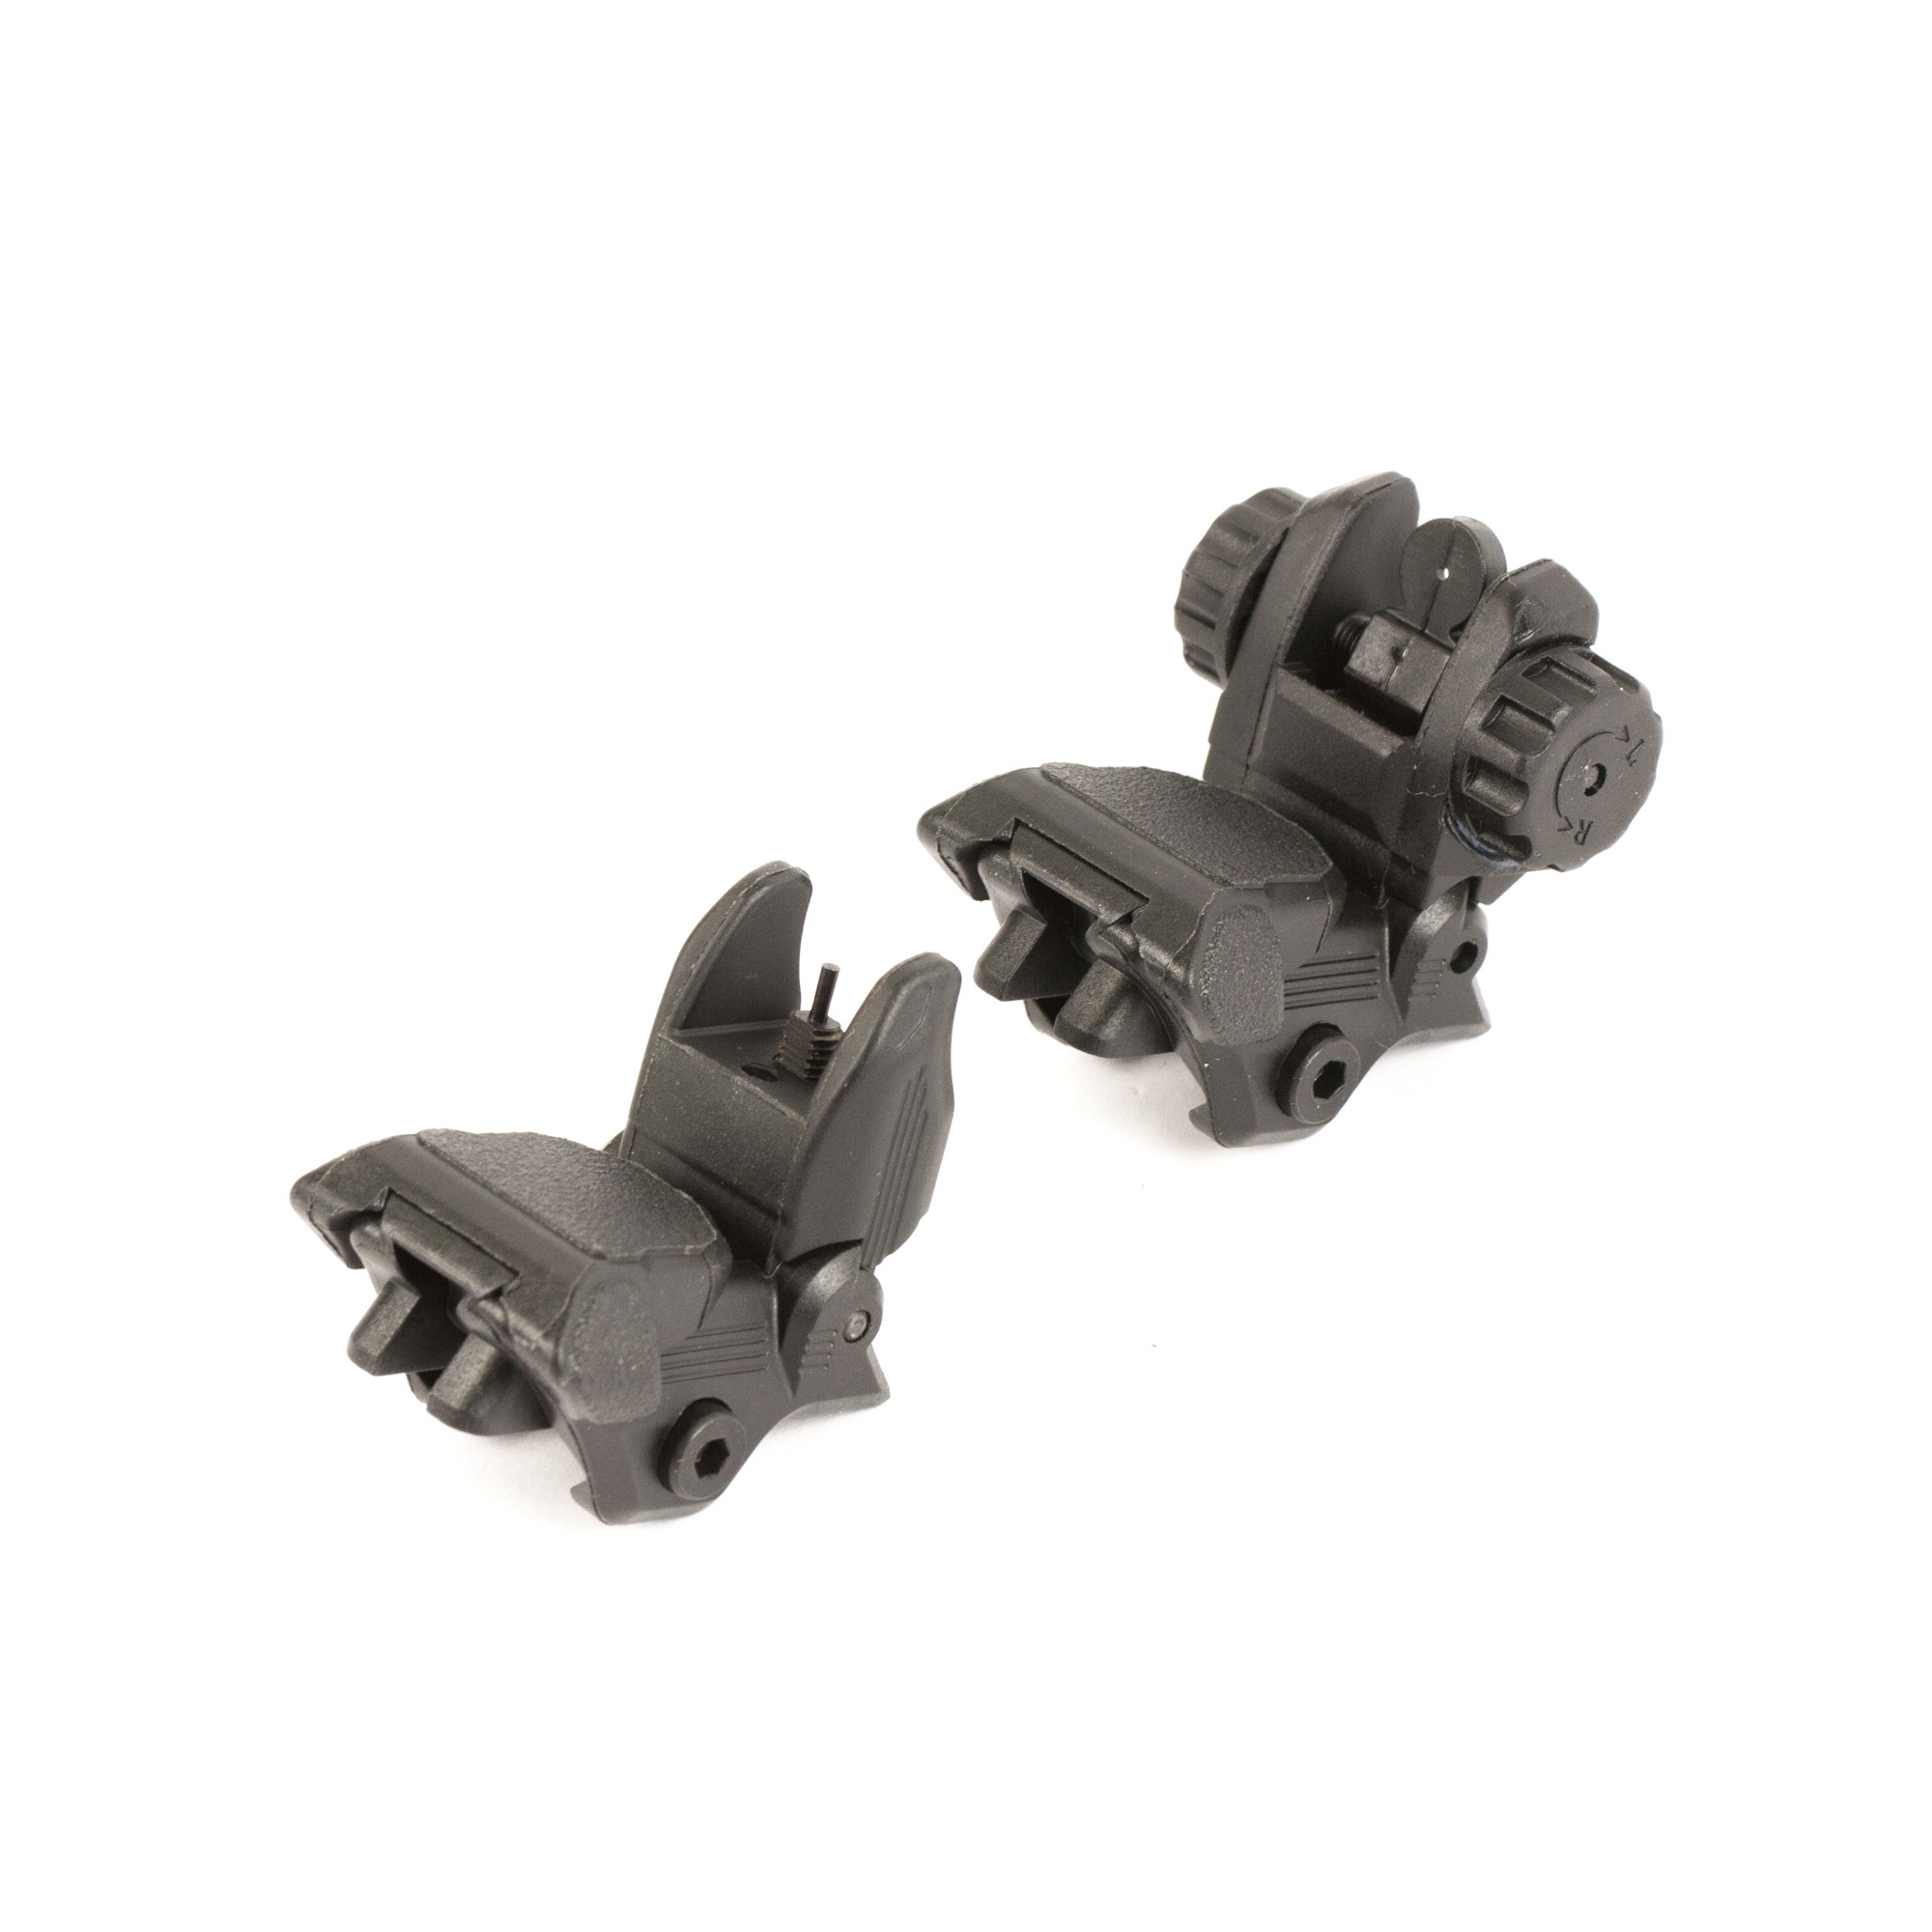 Lakota Ops Polymer Backup Sight Set - Black